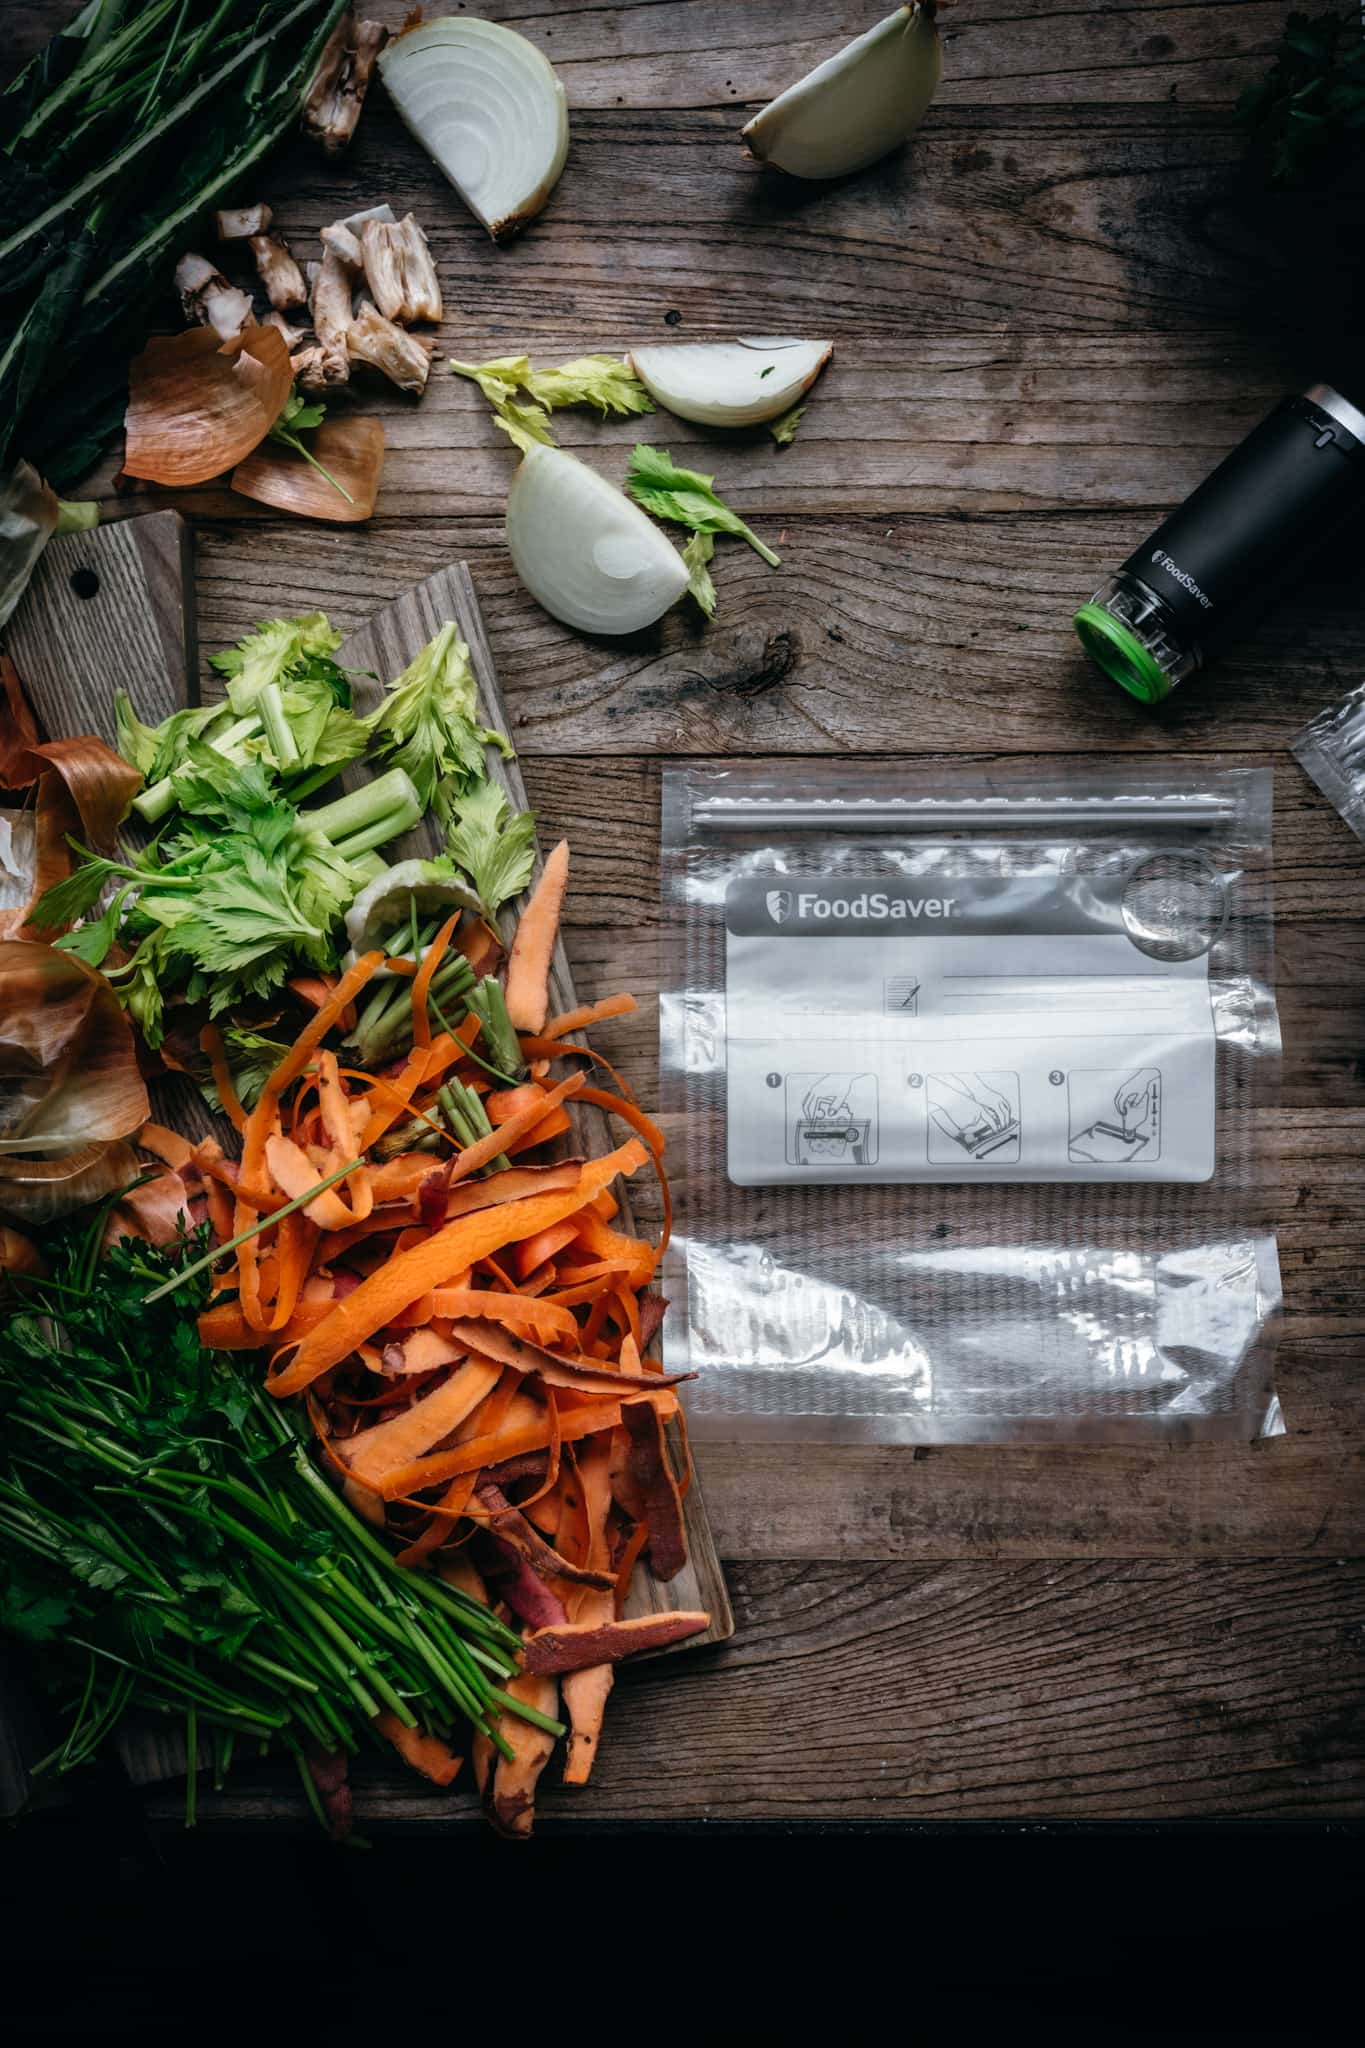 overhead view of FoodSaver vacuum sealer next to cutting tray with vegetable scraps